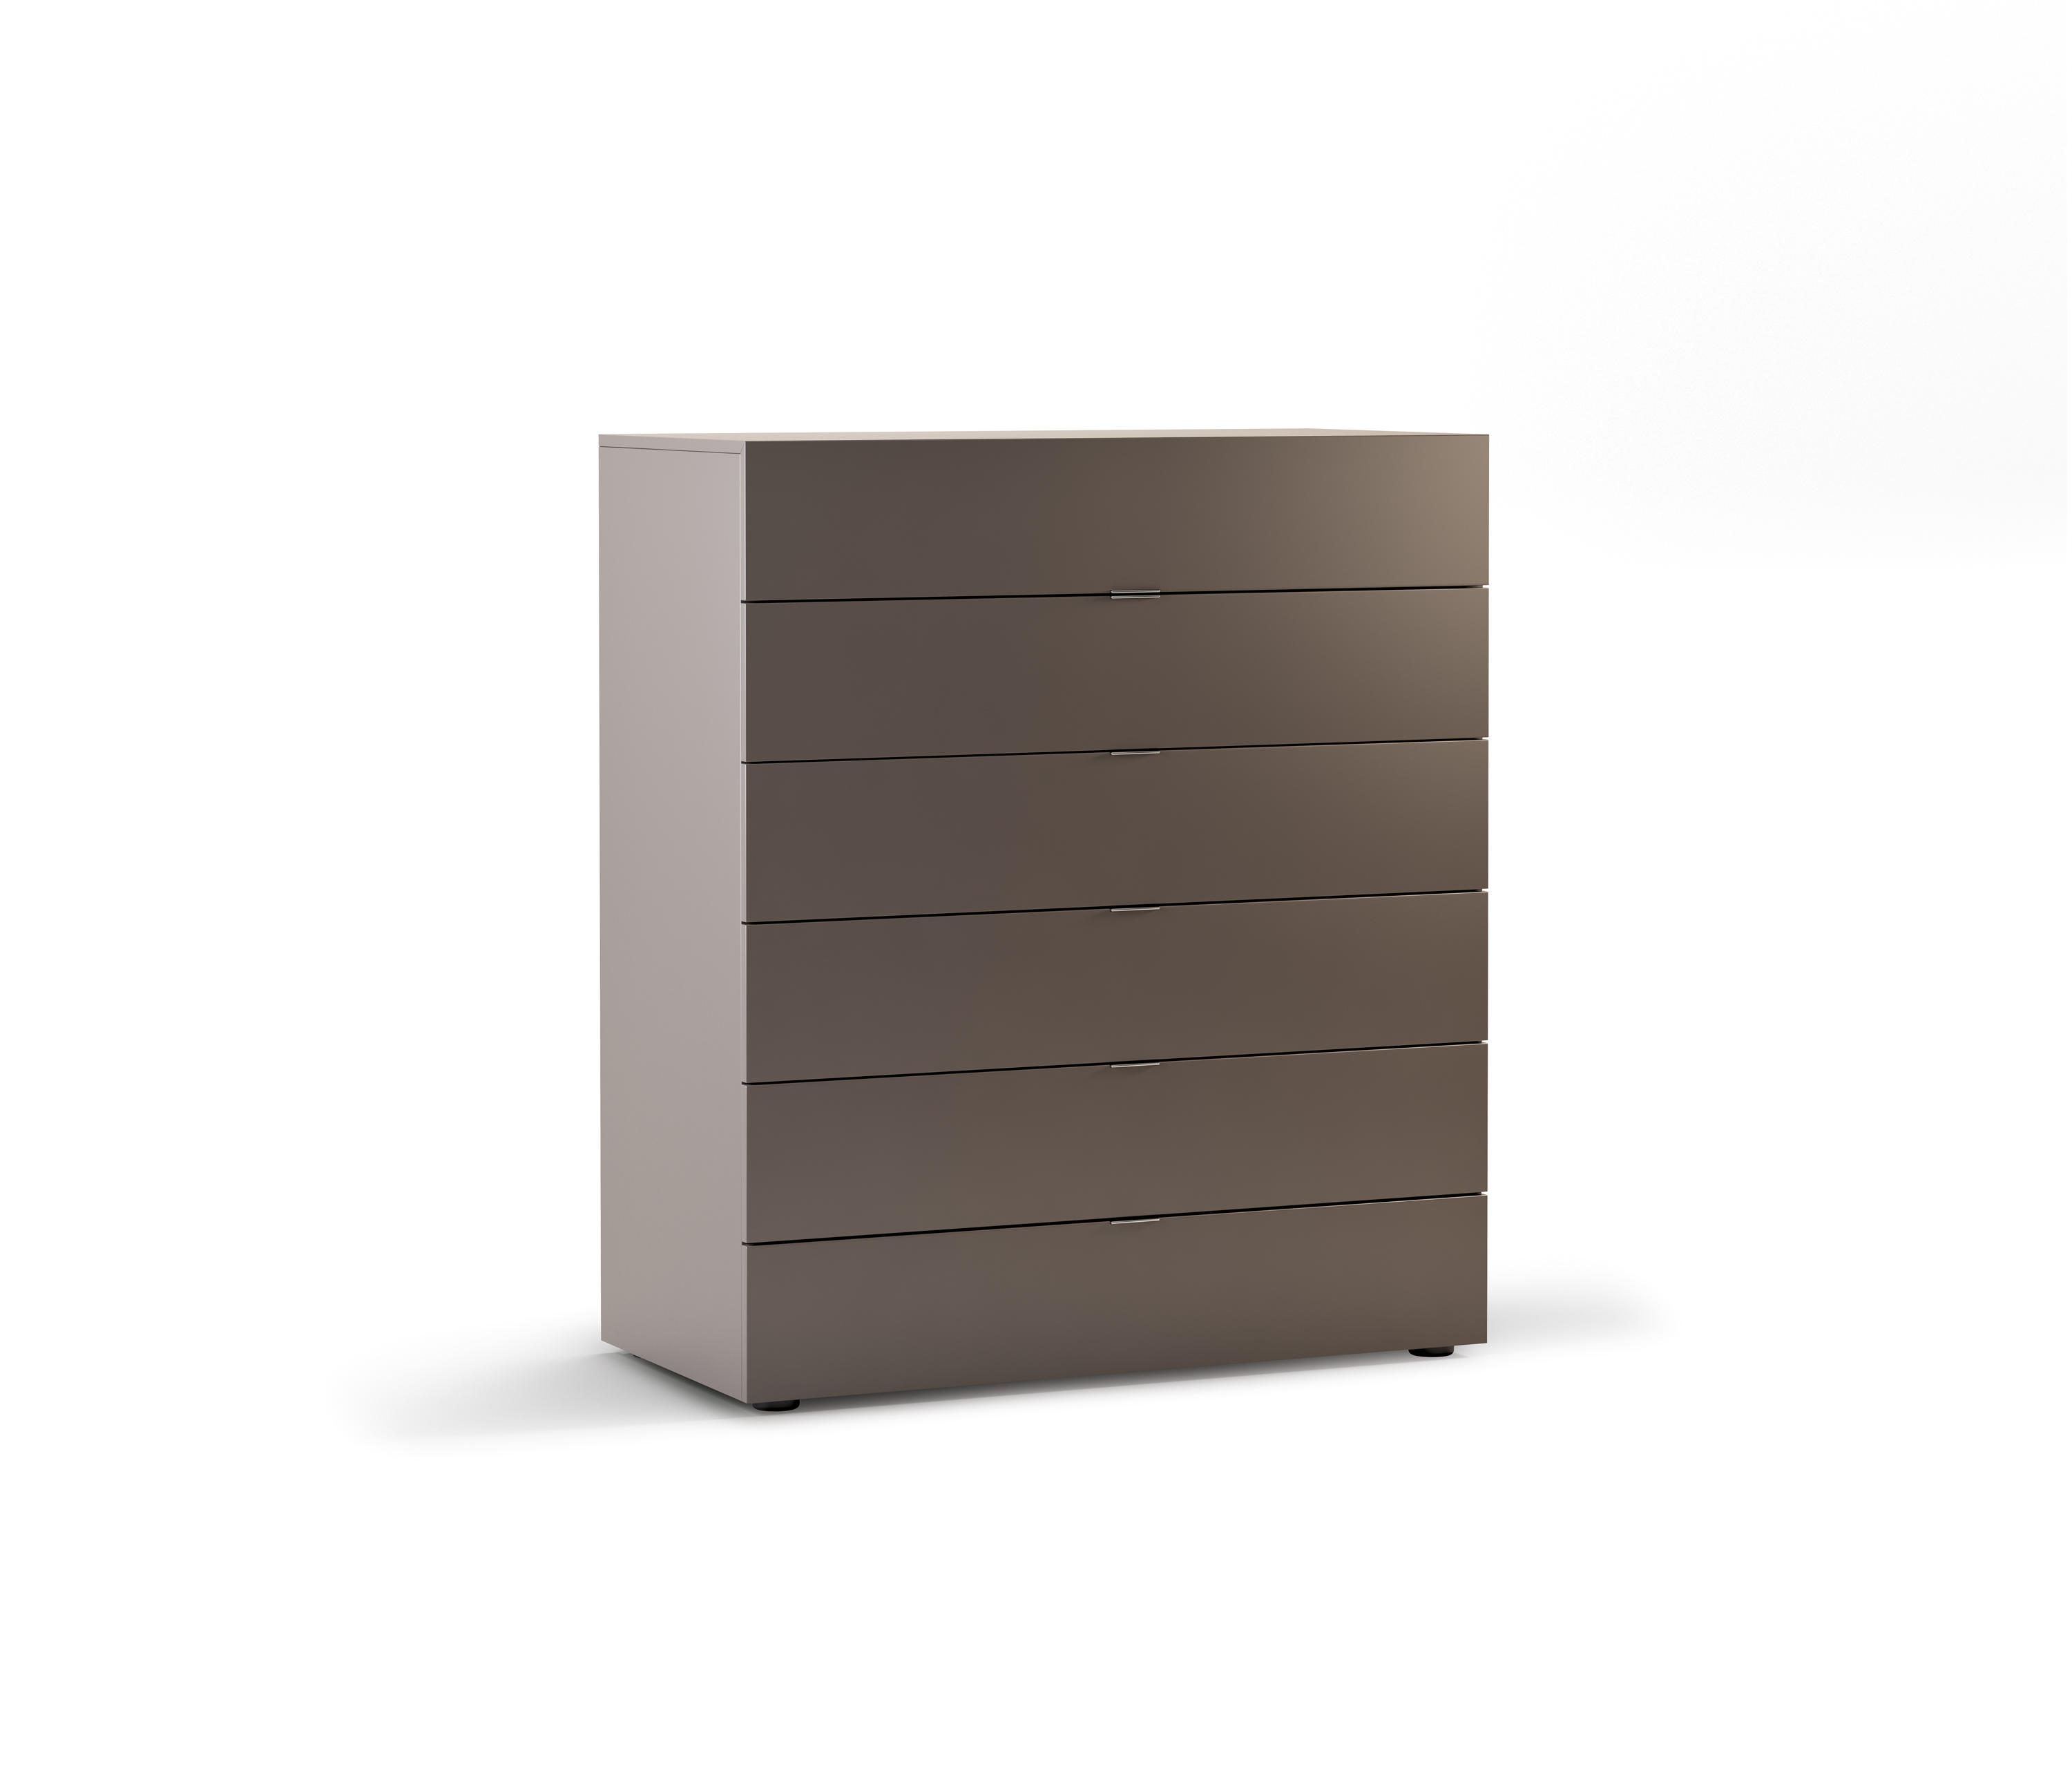 Bellino sideboards from team by wellis architonic for Team by wellis